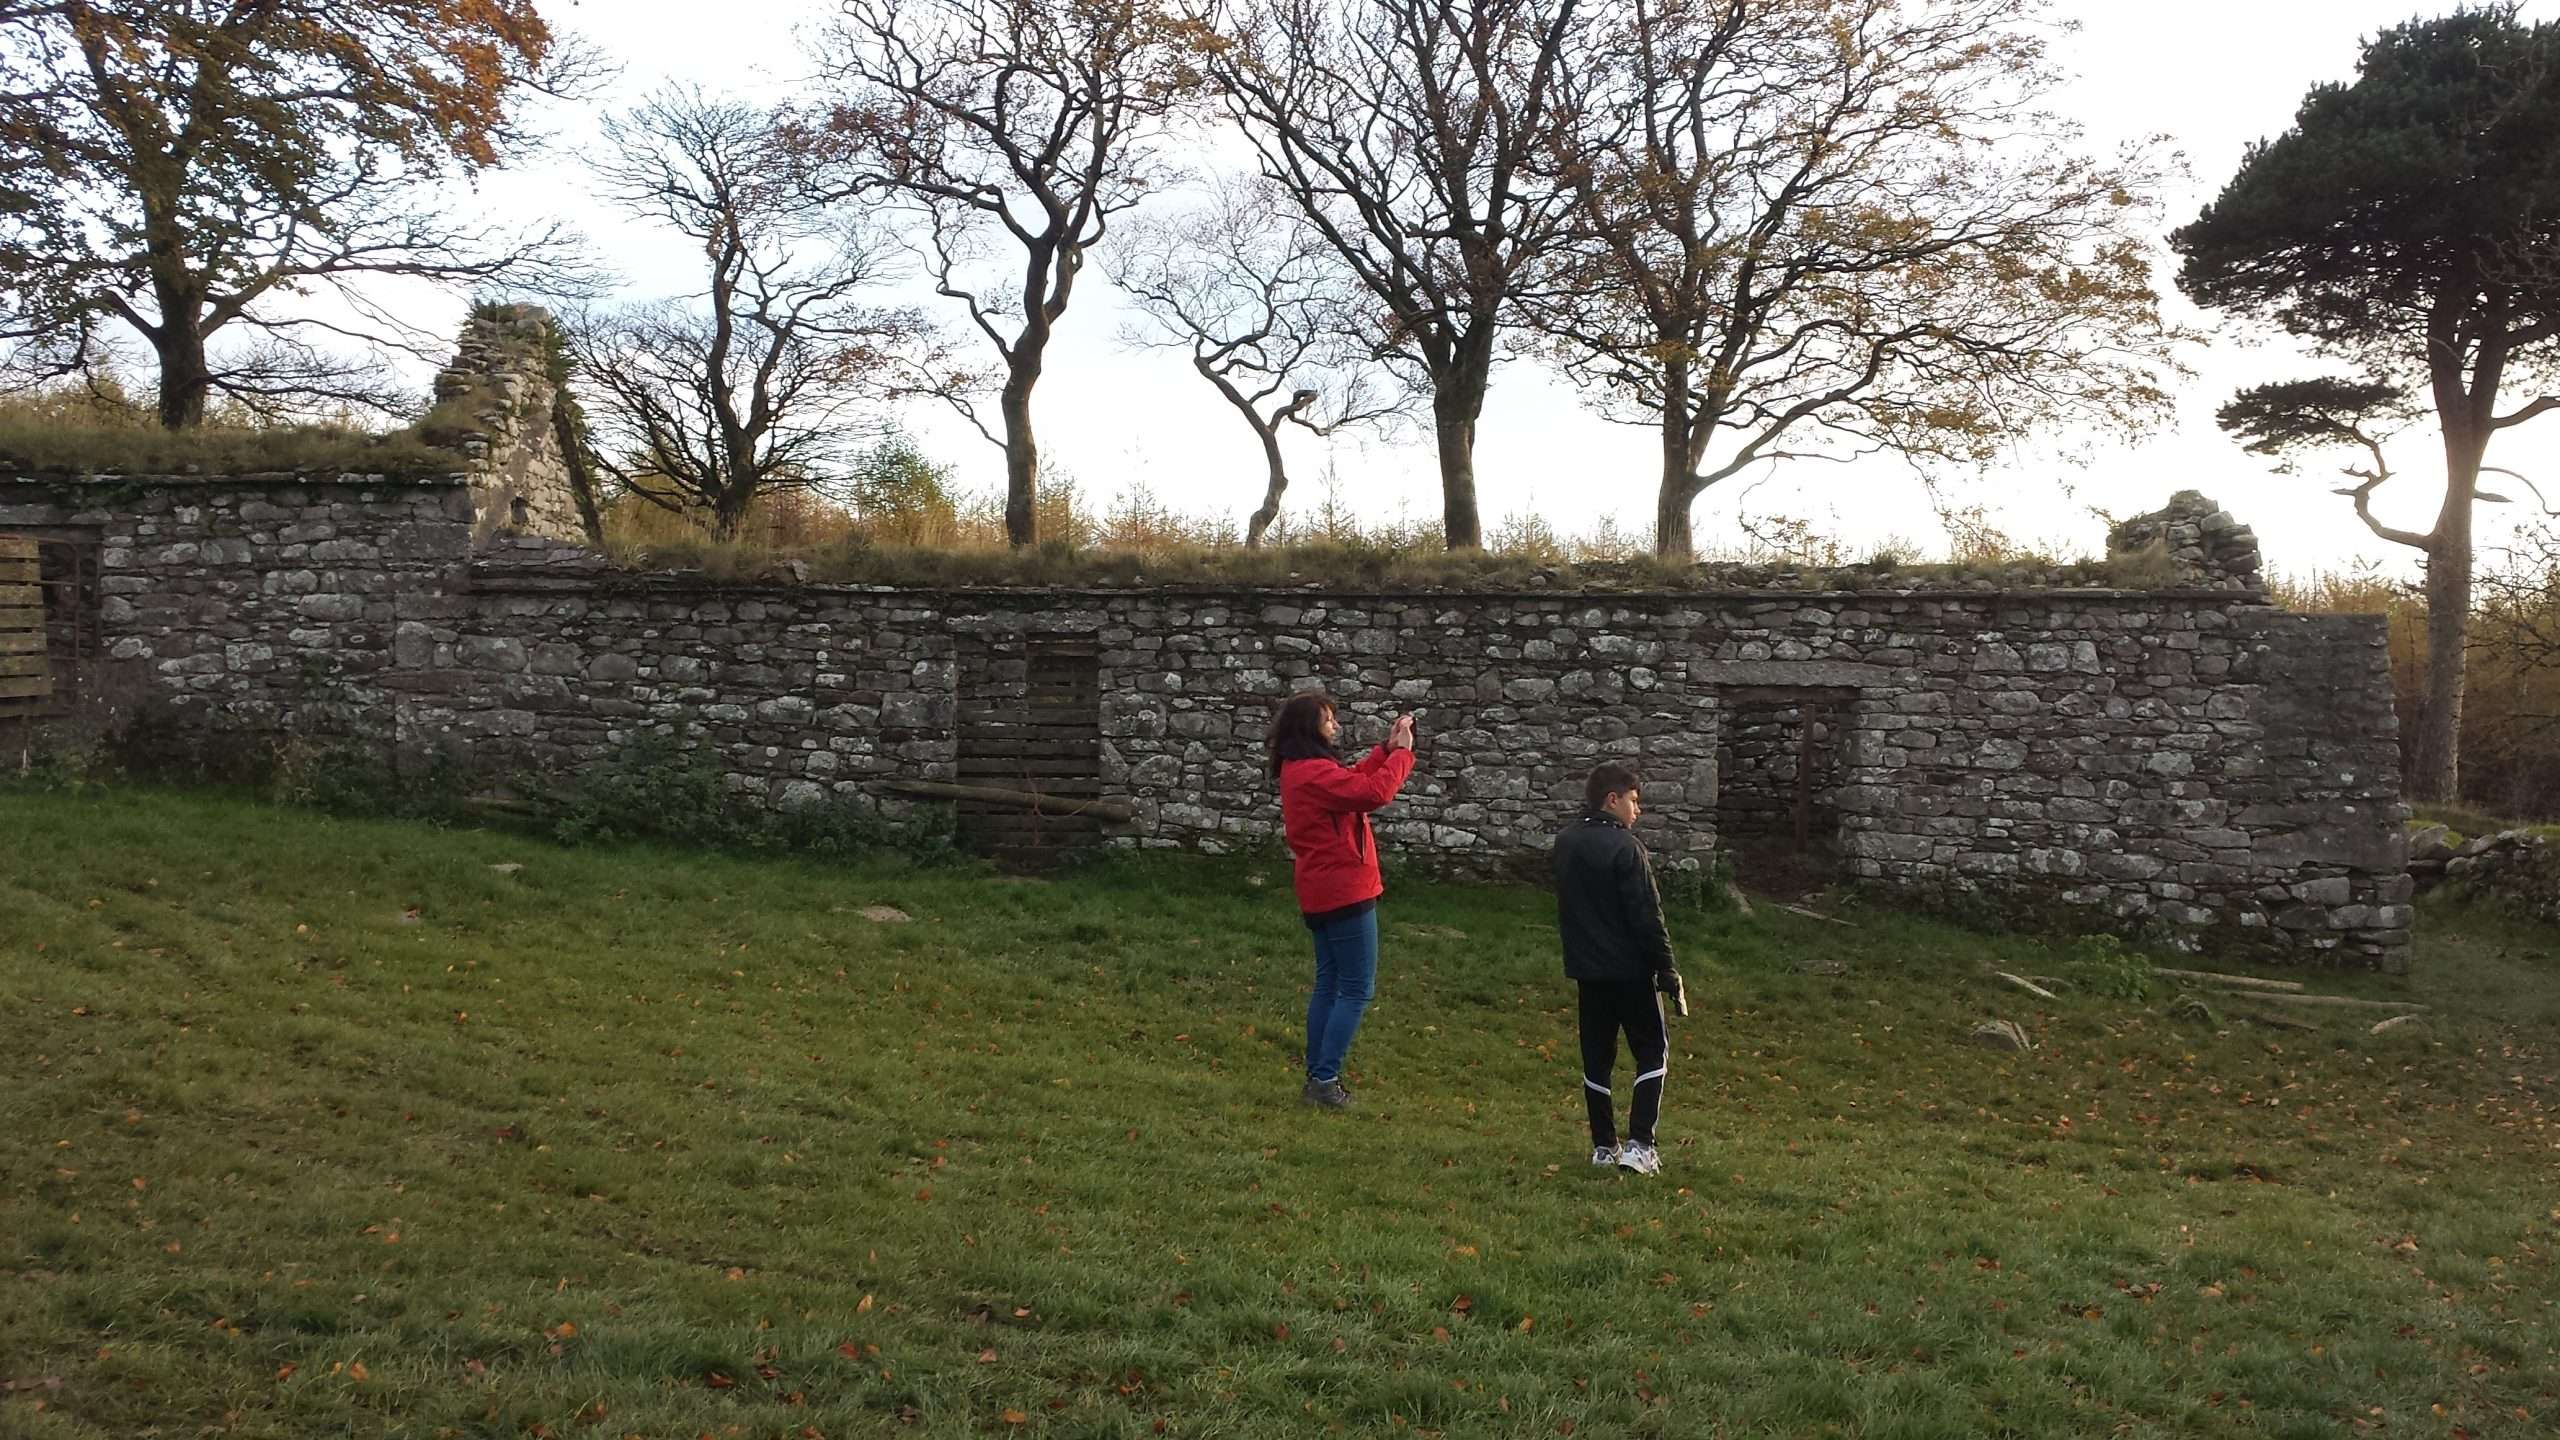 A woman and a boy taking photos at Carrig ruins Wicklow